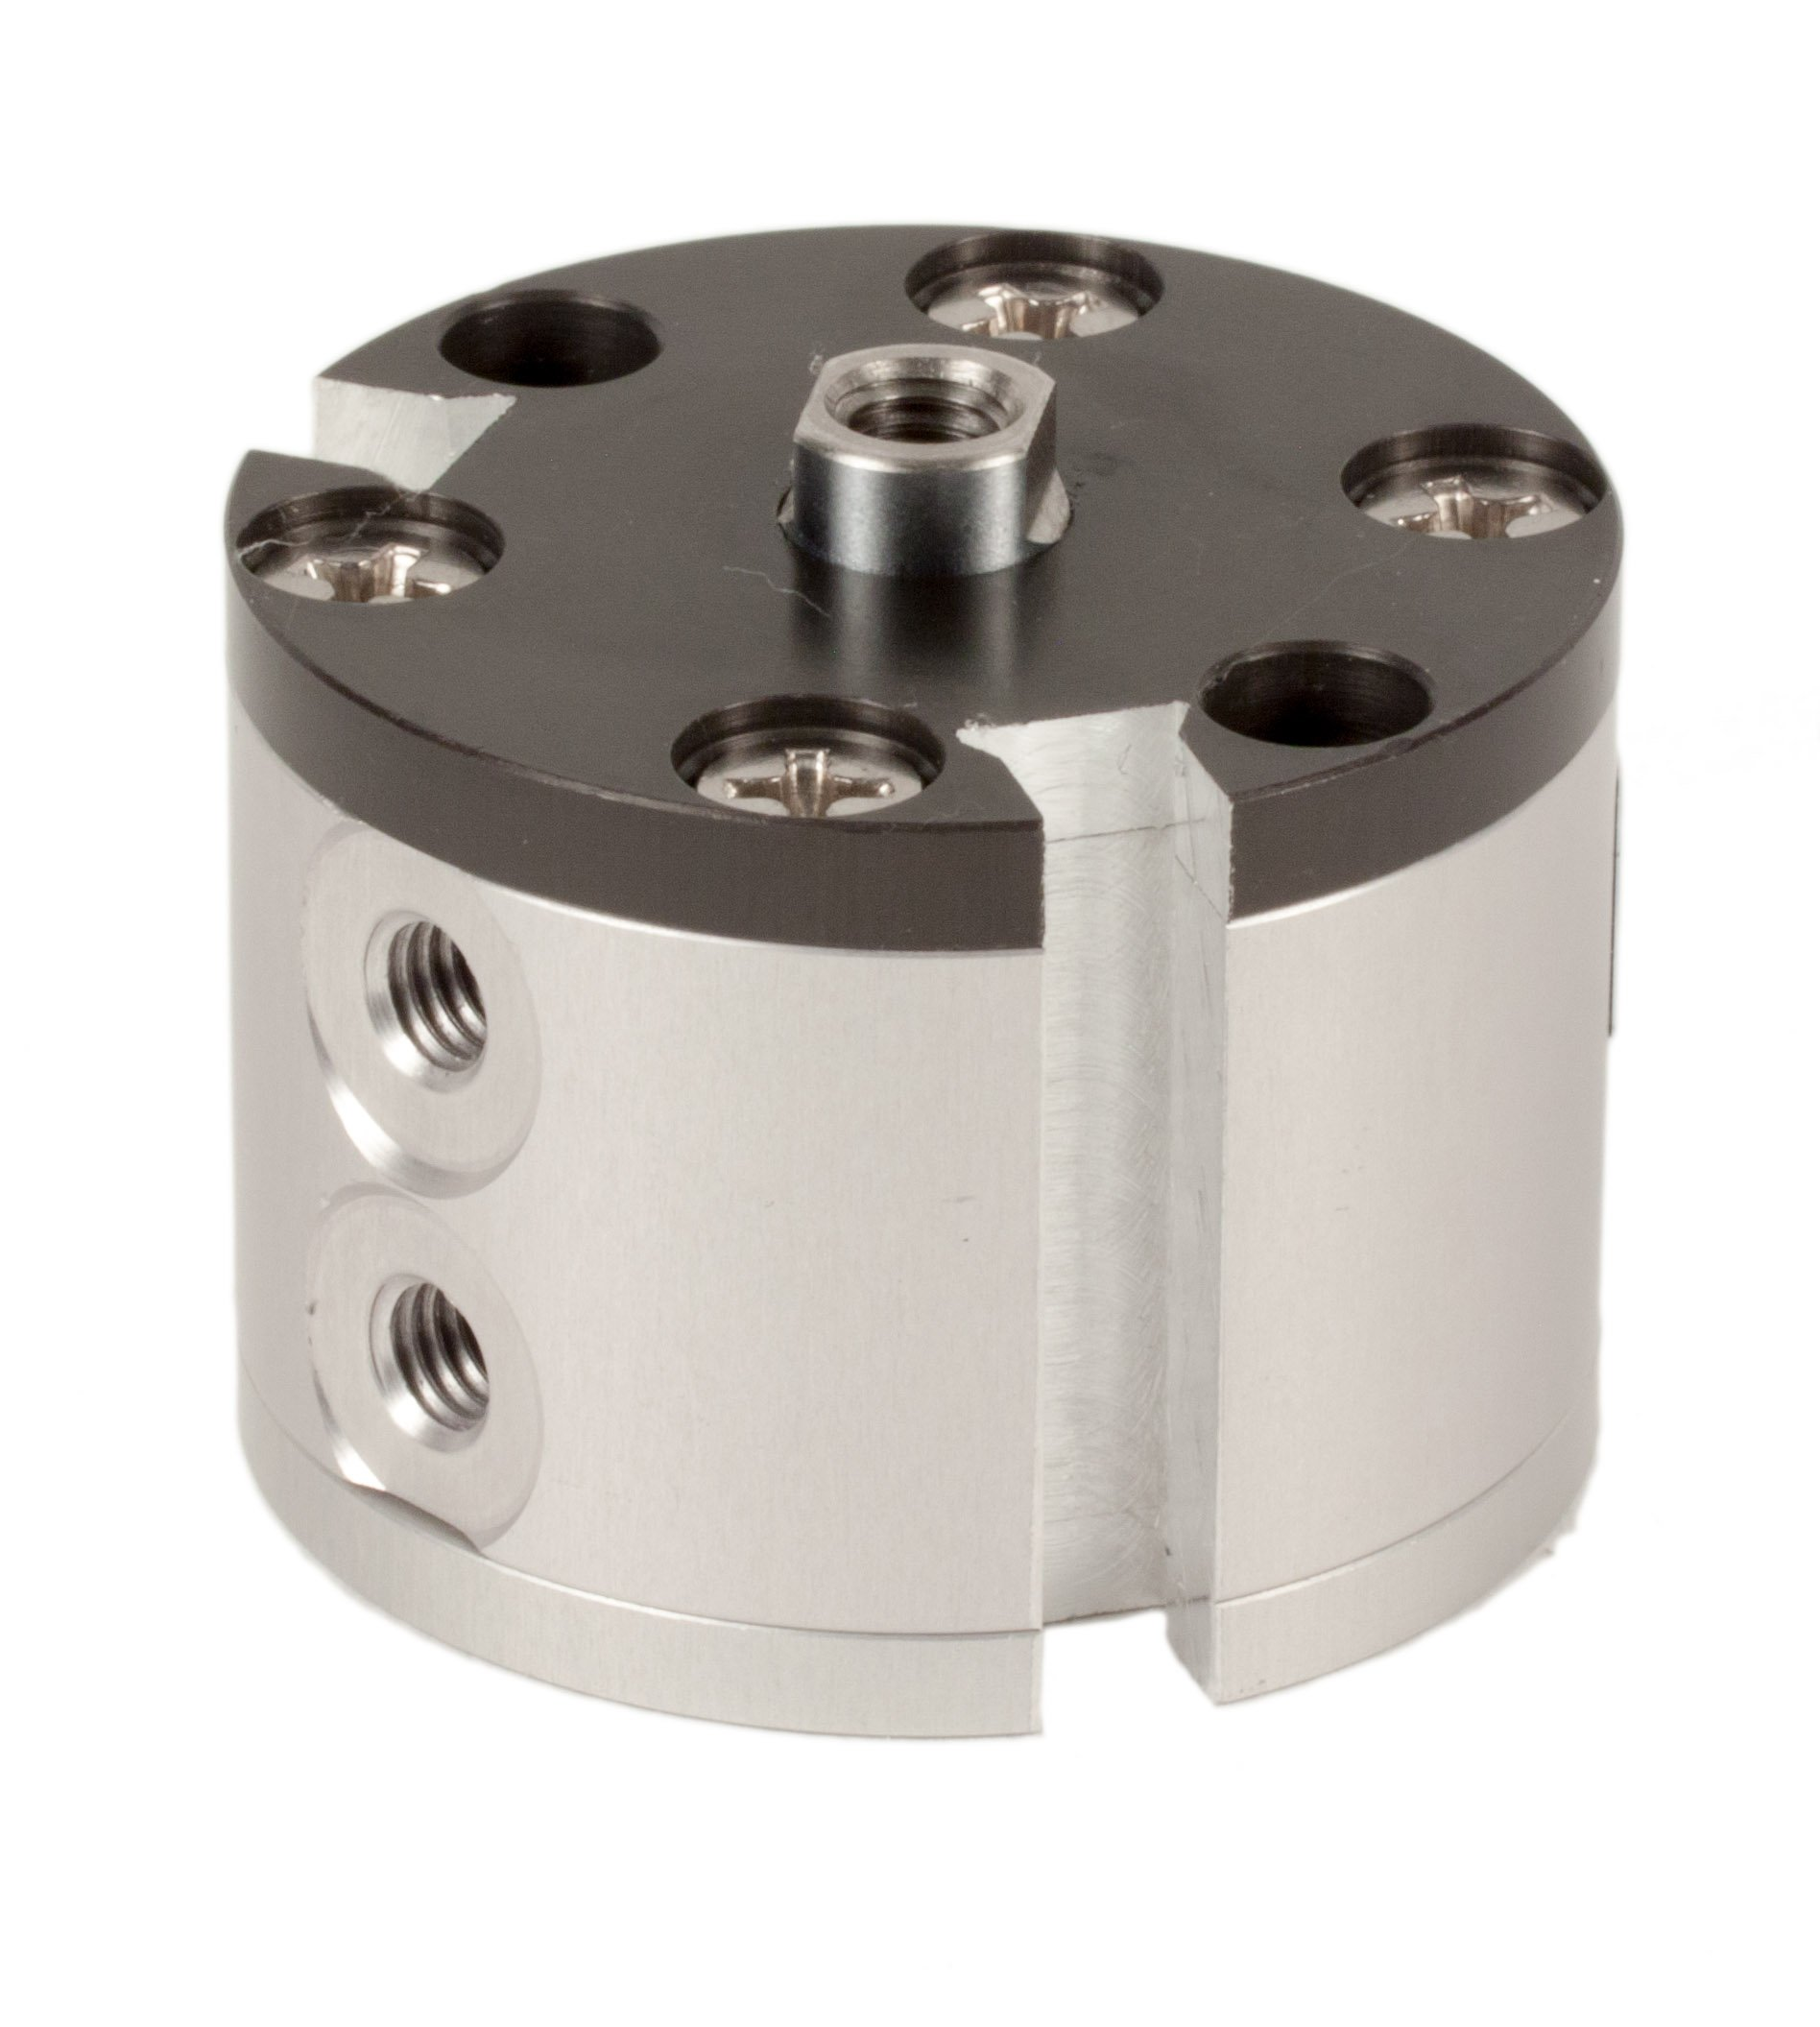 Fabco-Air E-7-X-E Original Pancake Cylinder, Double Acting, Maximum Pressure of 250 PSI, Switch Ready with Magnet, 3/4'' Bore Diameter x 1/2'' Stroke